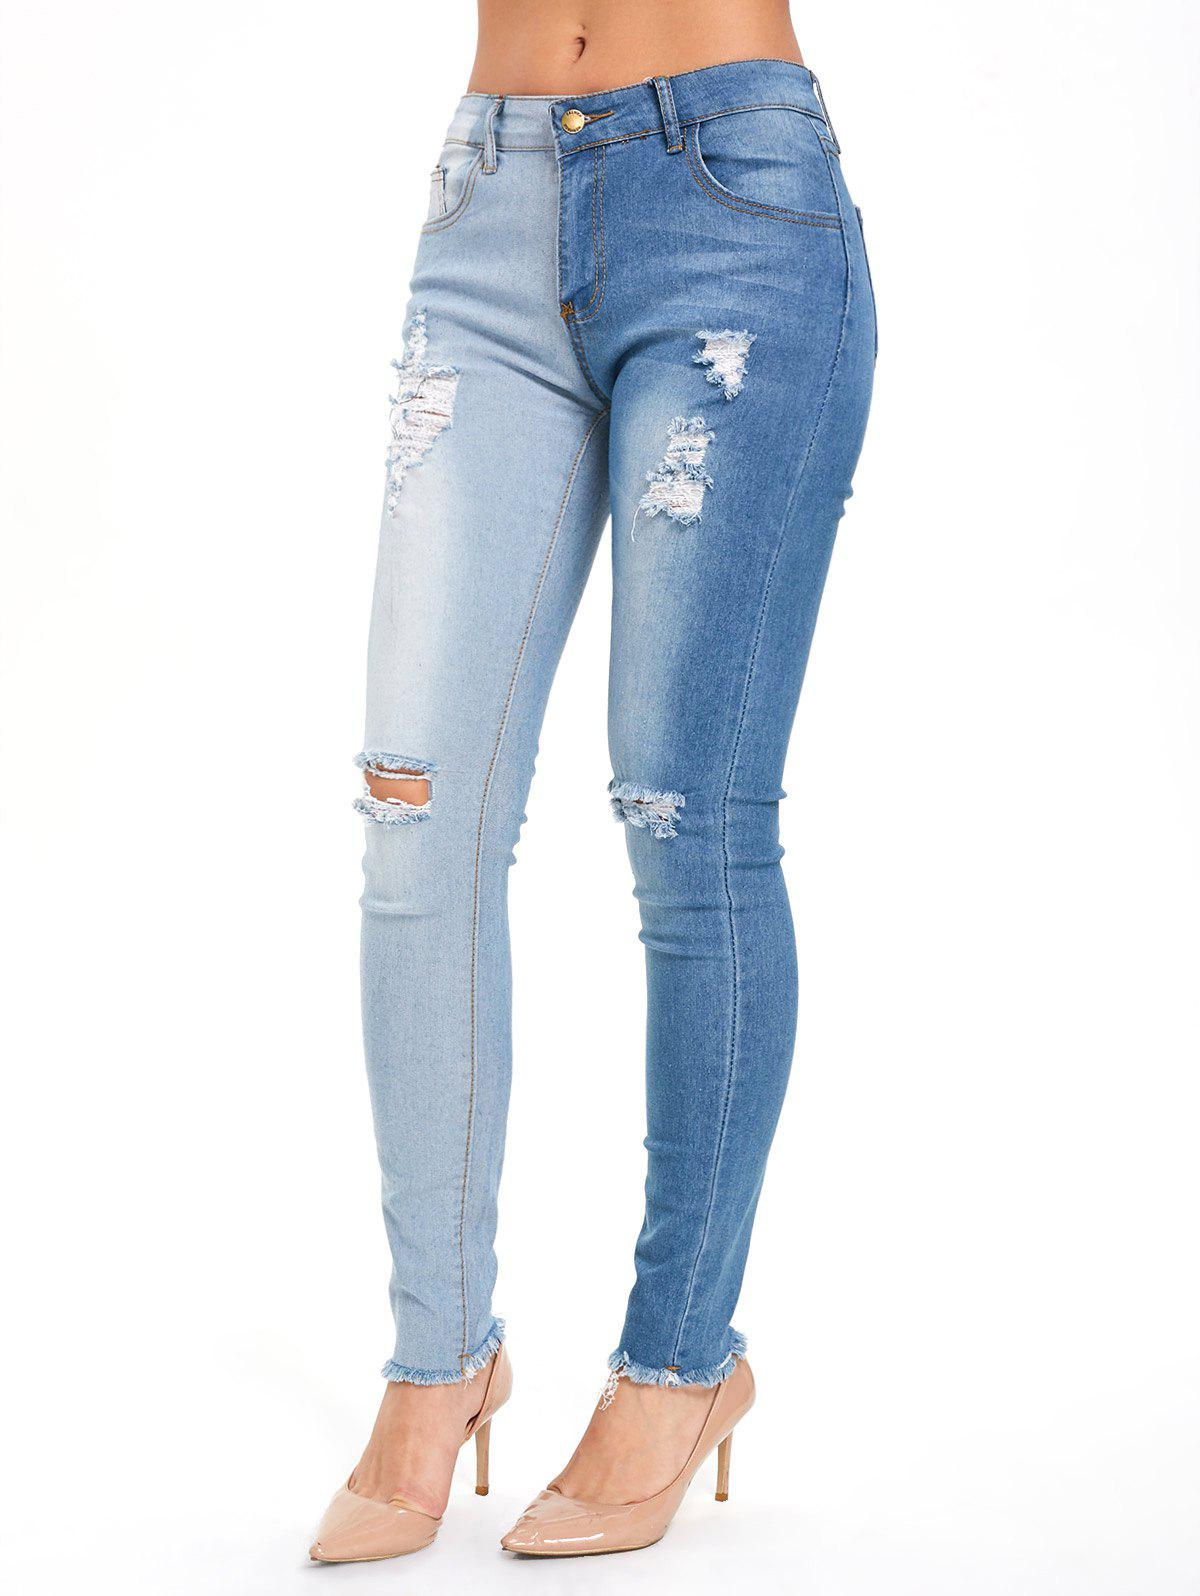 Chic Color Block High Waisted Ripped Jeans